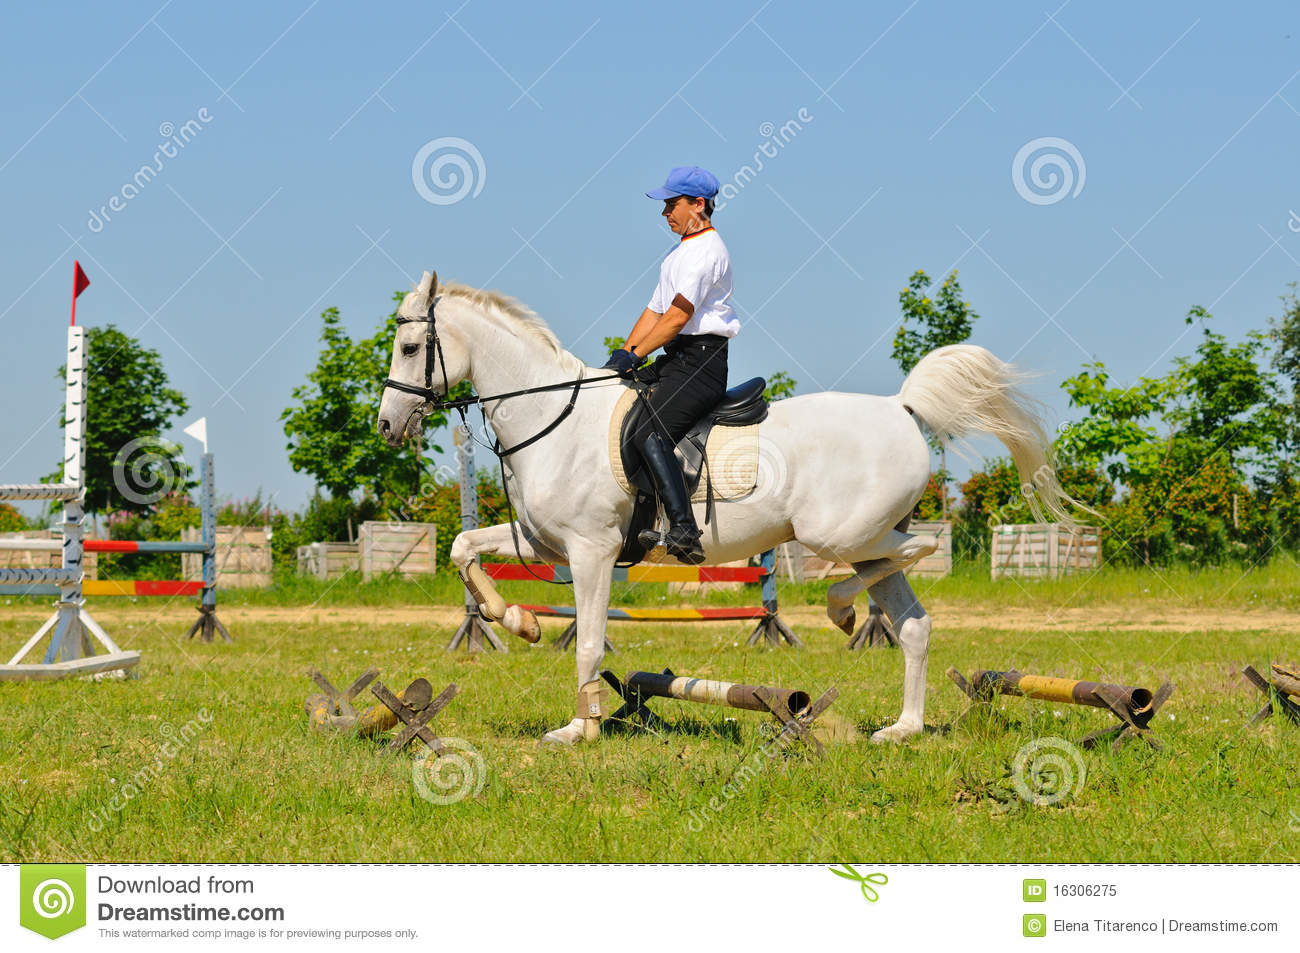 Rider On White Arabian Horse Stock Image Image Of Mare Outdoor 16306275